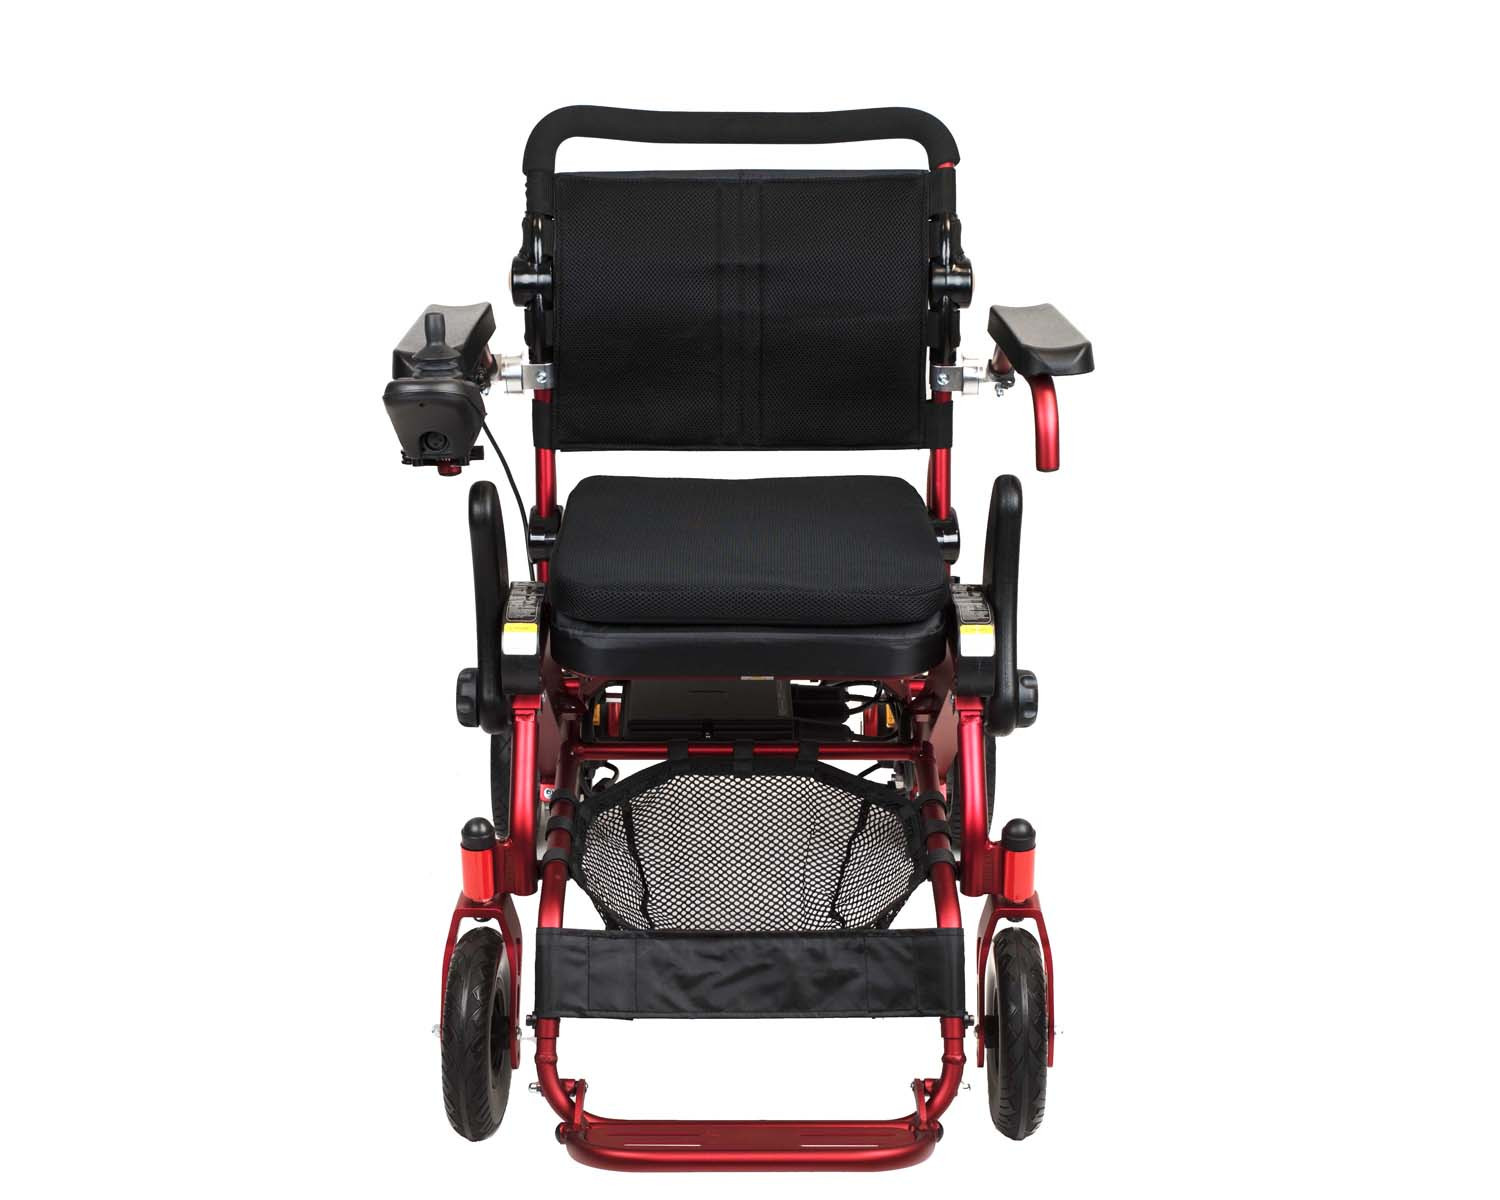 Geo cruiser dx folding power wheelchair on sale lowest for Cost of motorized wheelchair